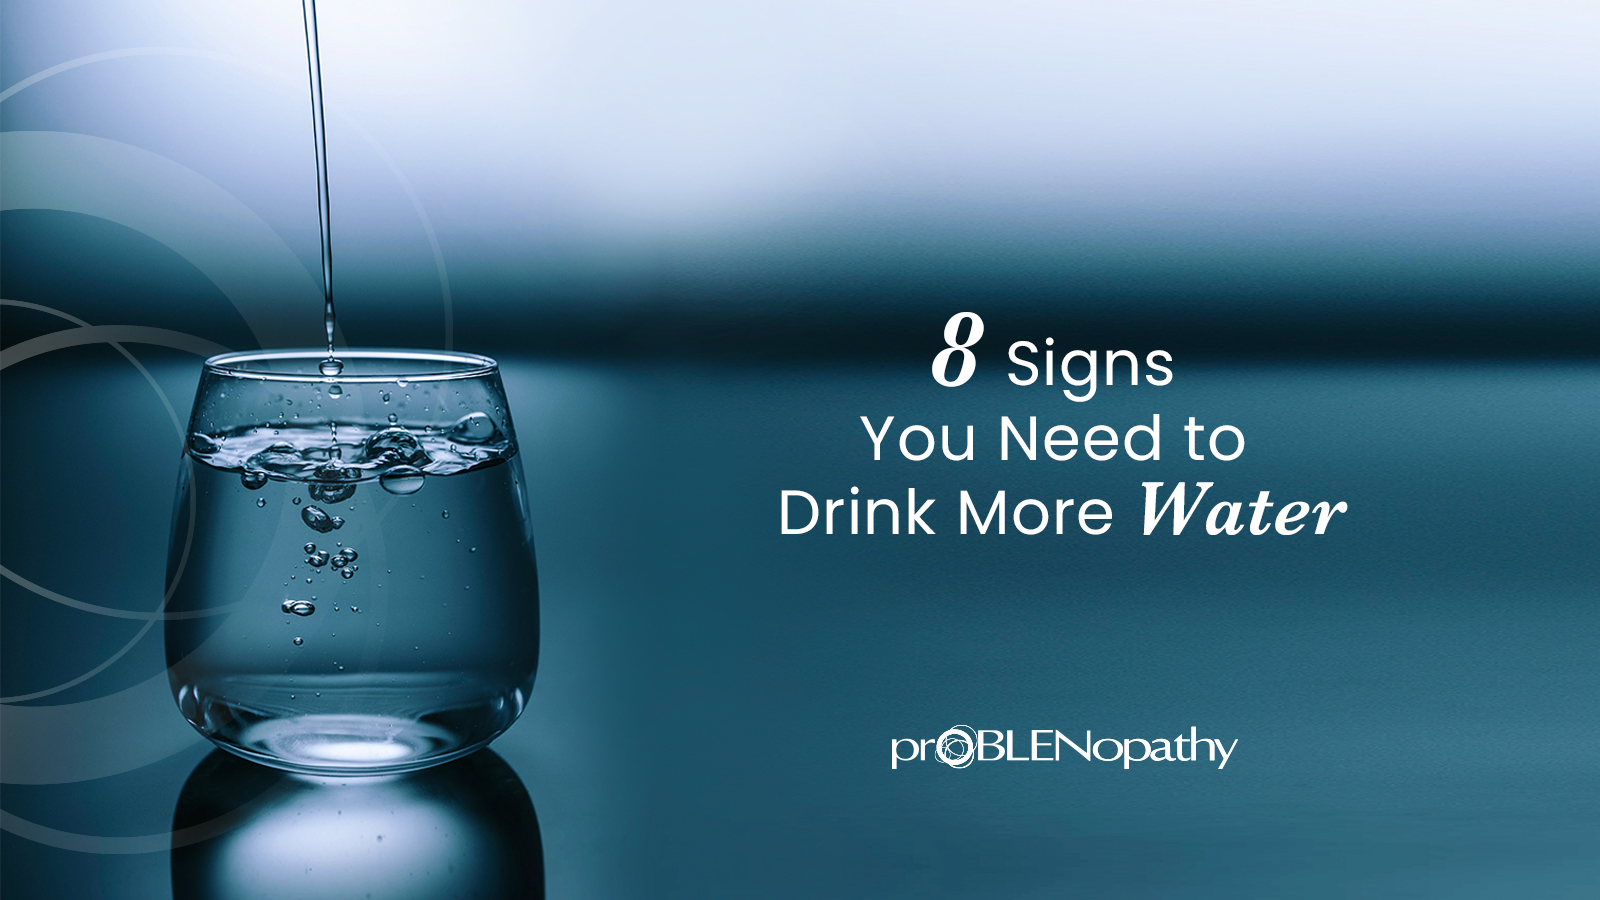 8 Signs You Need to Drink More Water